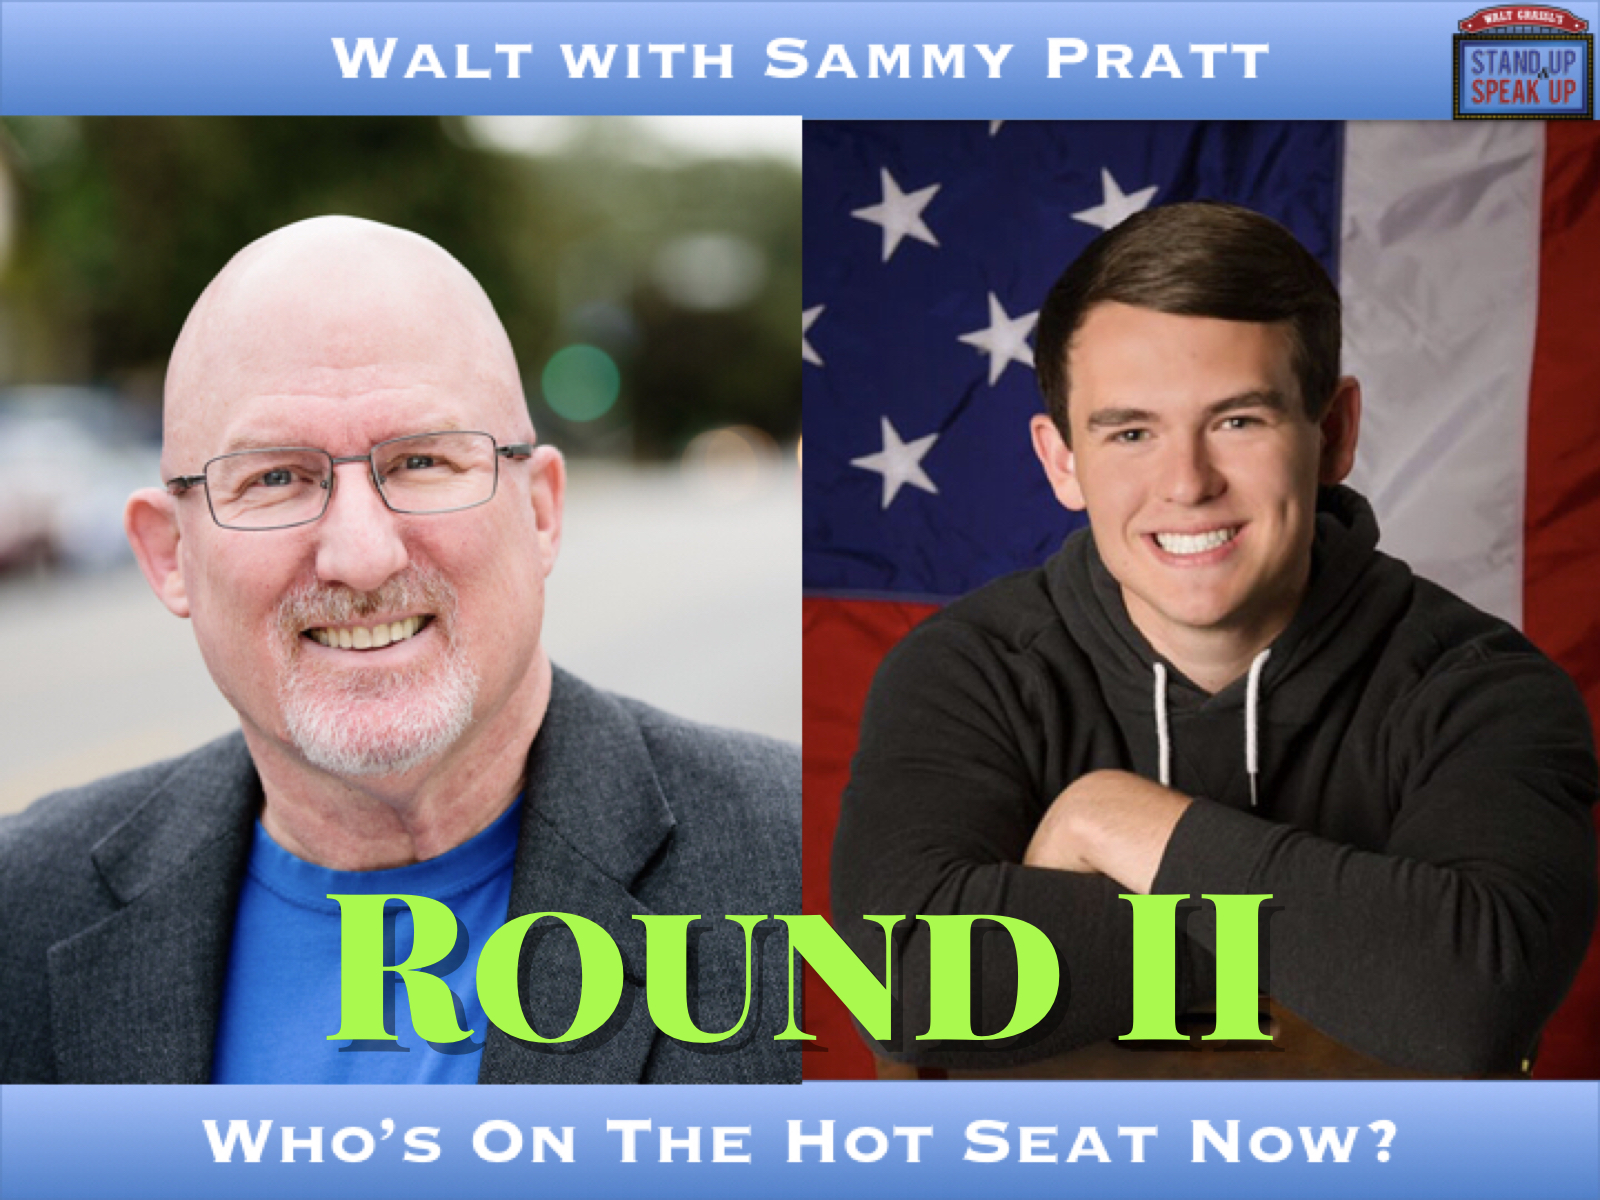 Walt with Sammy Pratt – Round 2 of Who's In The Hot Seat Now?